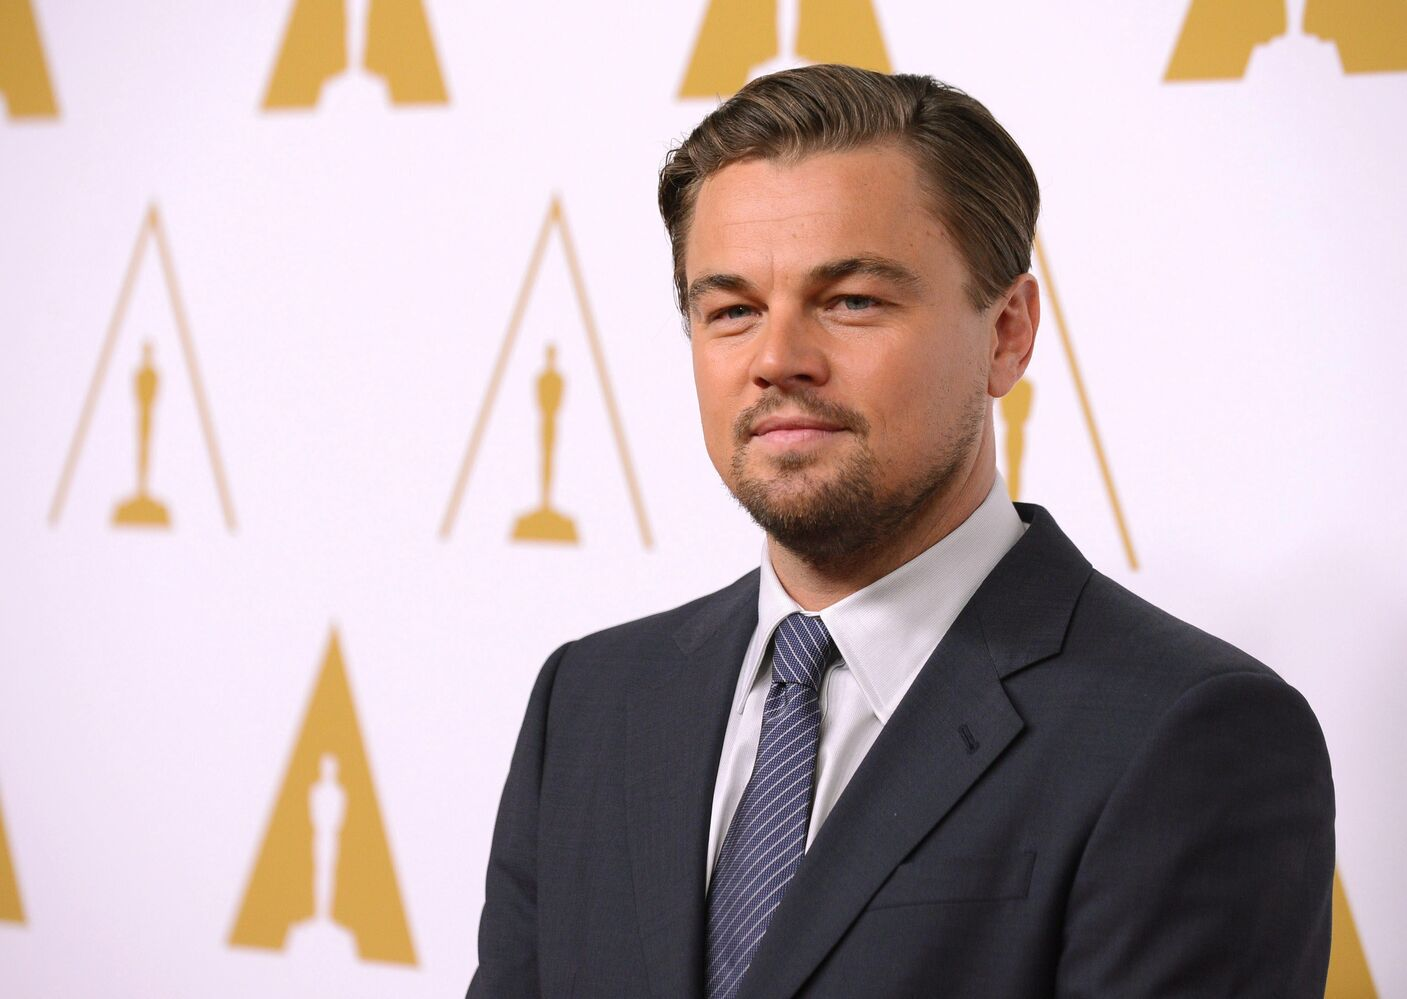 Leonardo DiCaprio is nominated in the Best Actor category for his performance in Wolf of Wall Street.